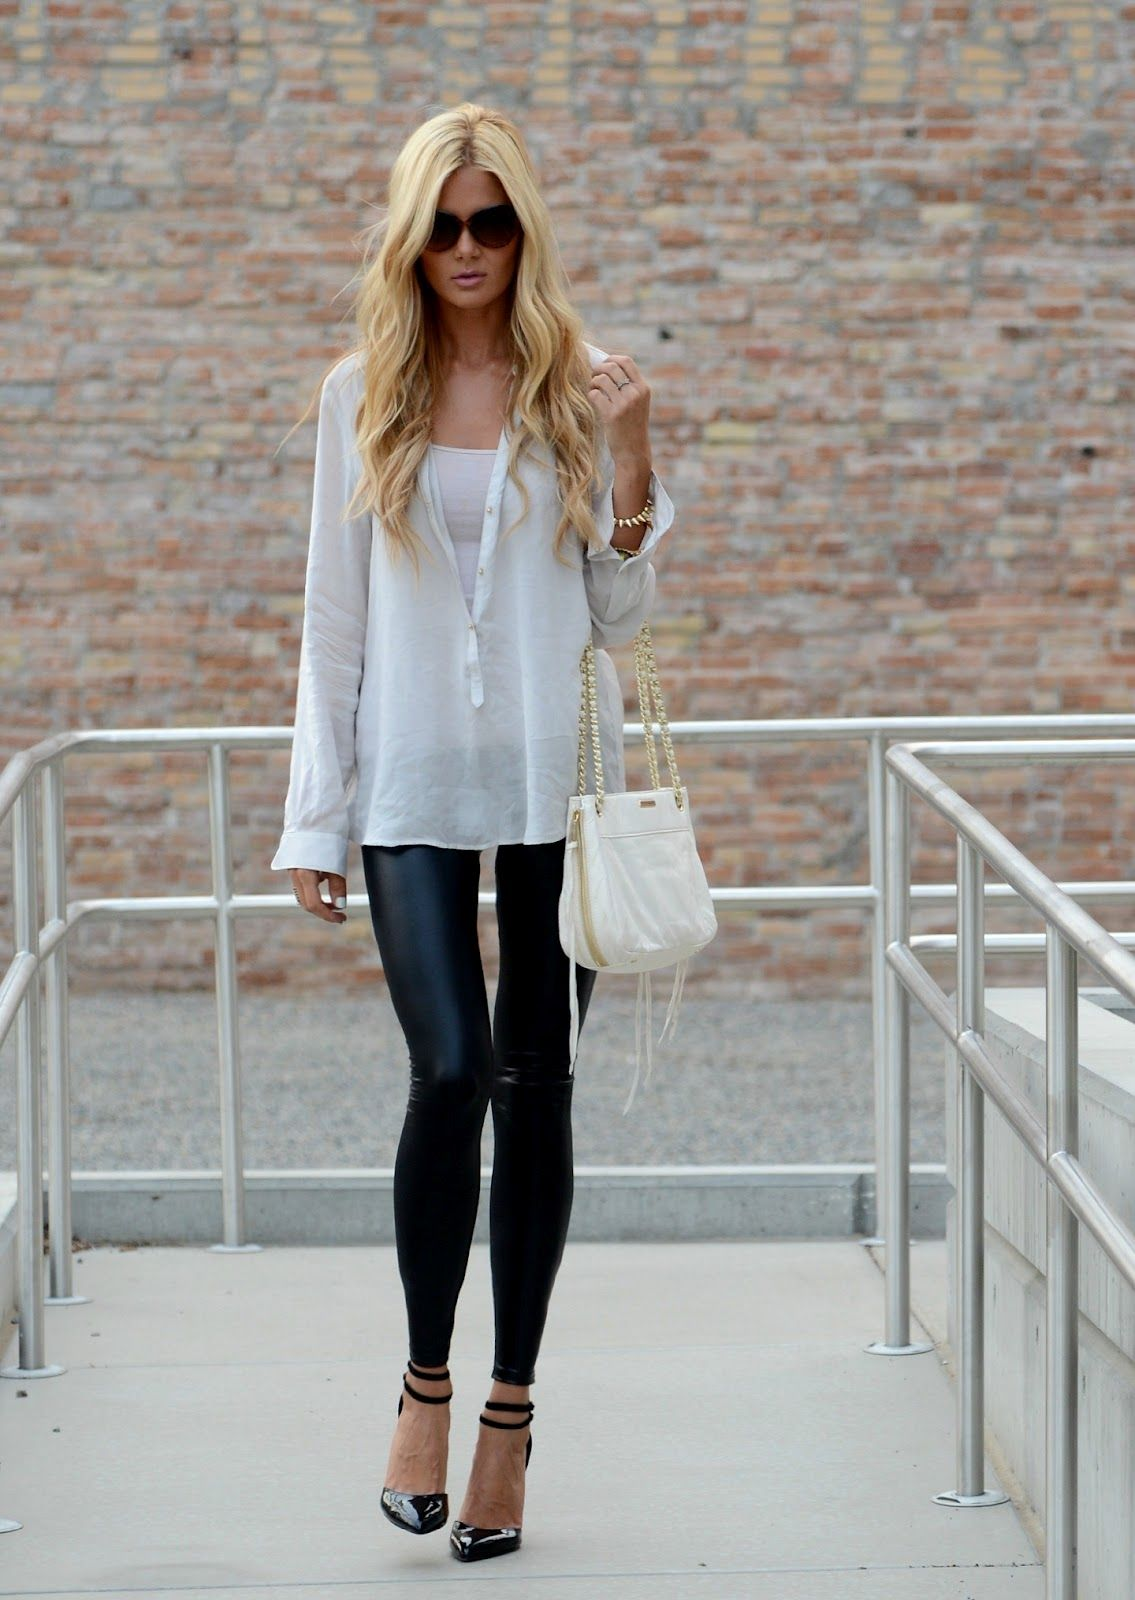 8d8b1ac567b8f blouse  zara   leather leggings  windsor   heels  asos   spike bracelet   asos   purse  Rebecca Minkoff...perfection